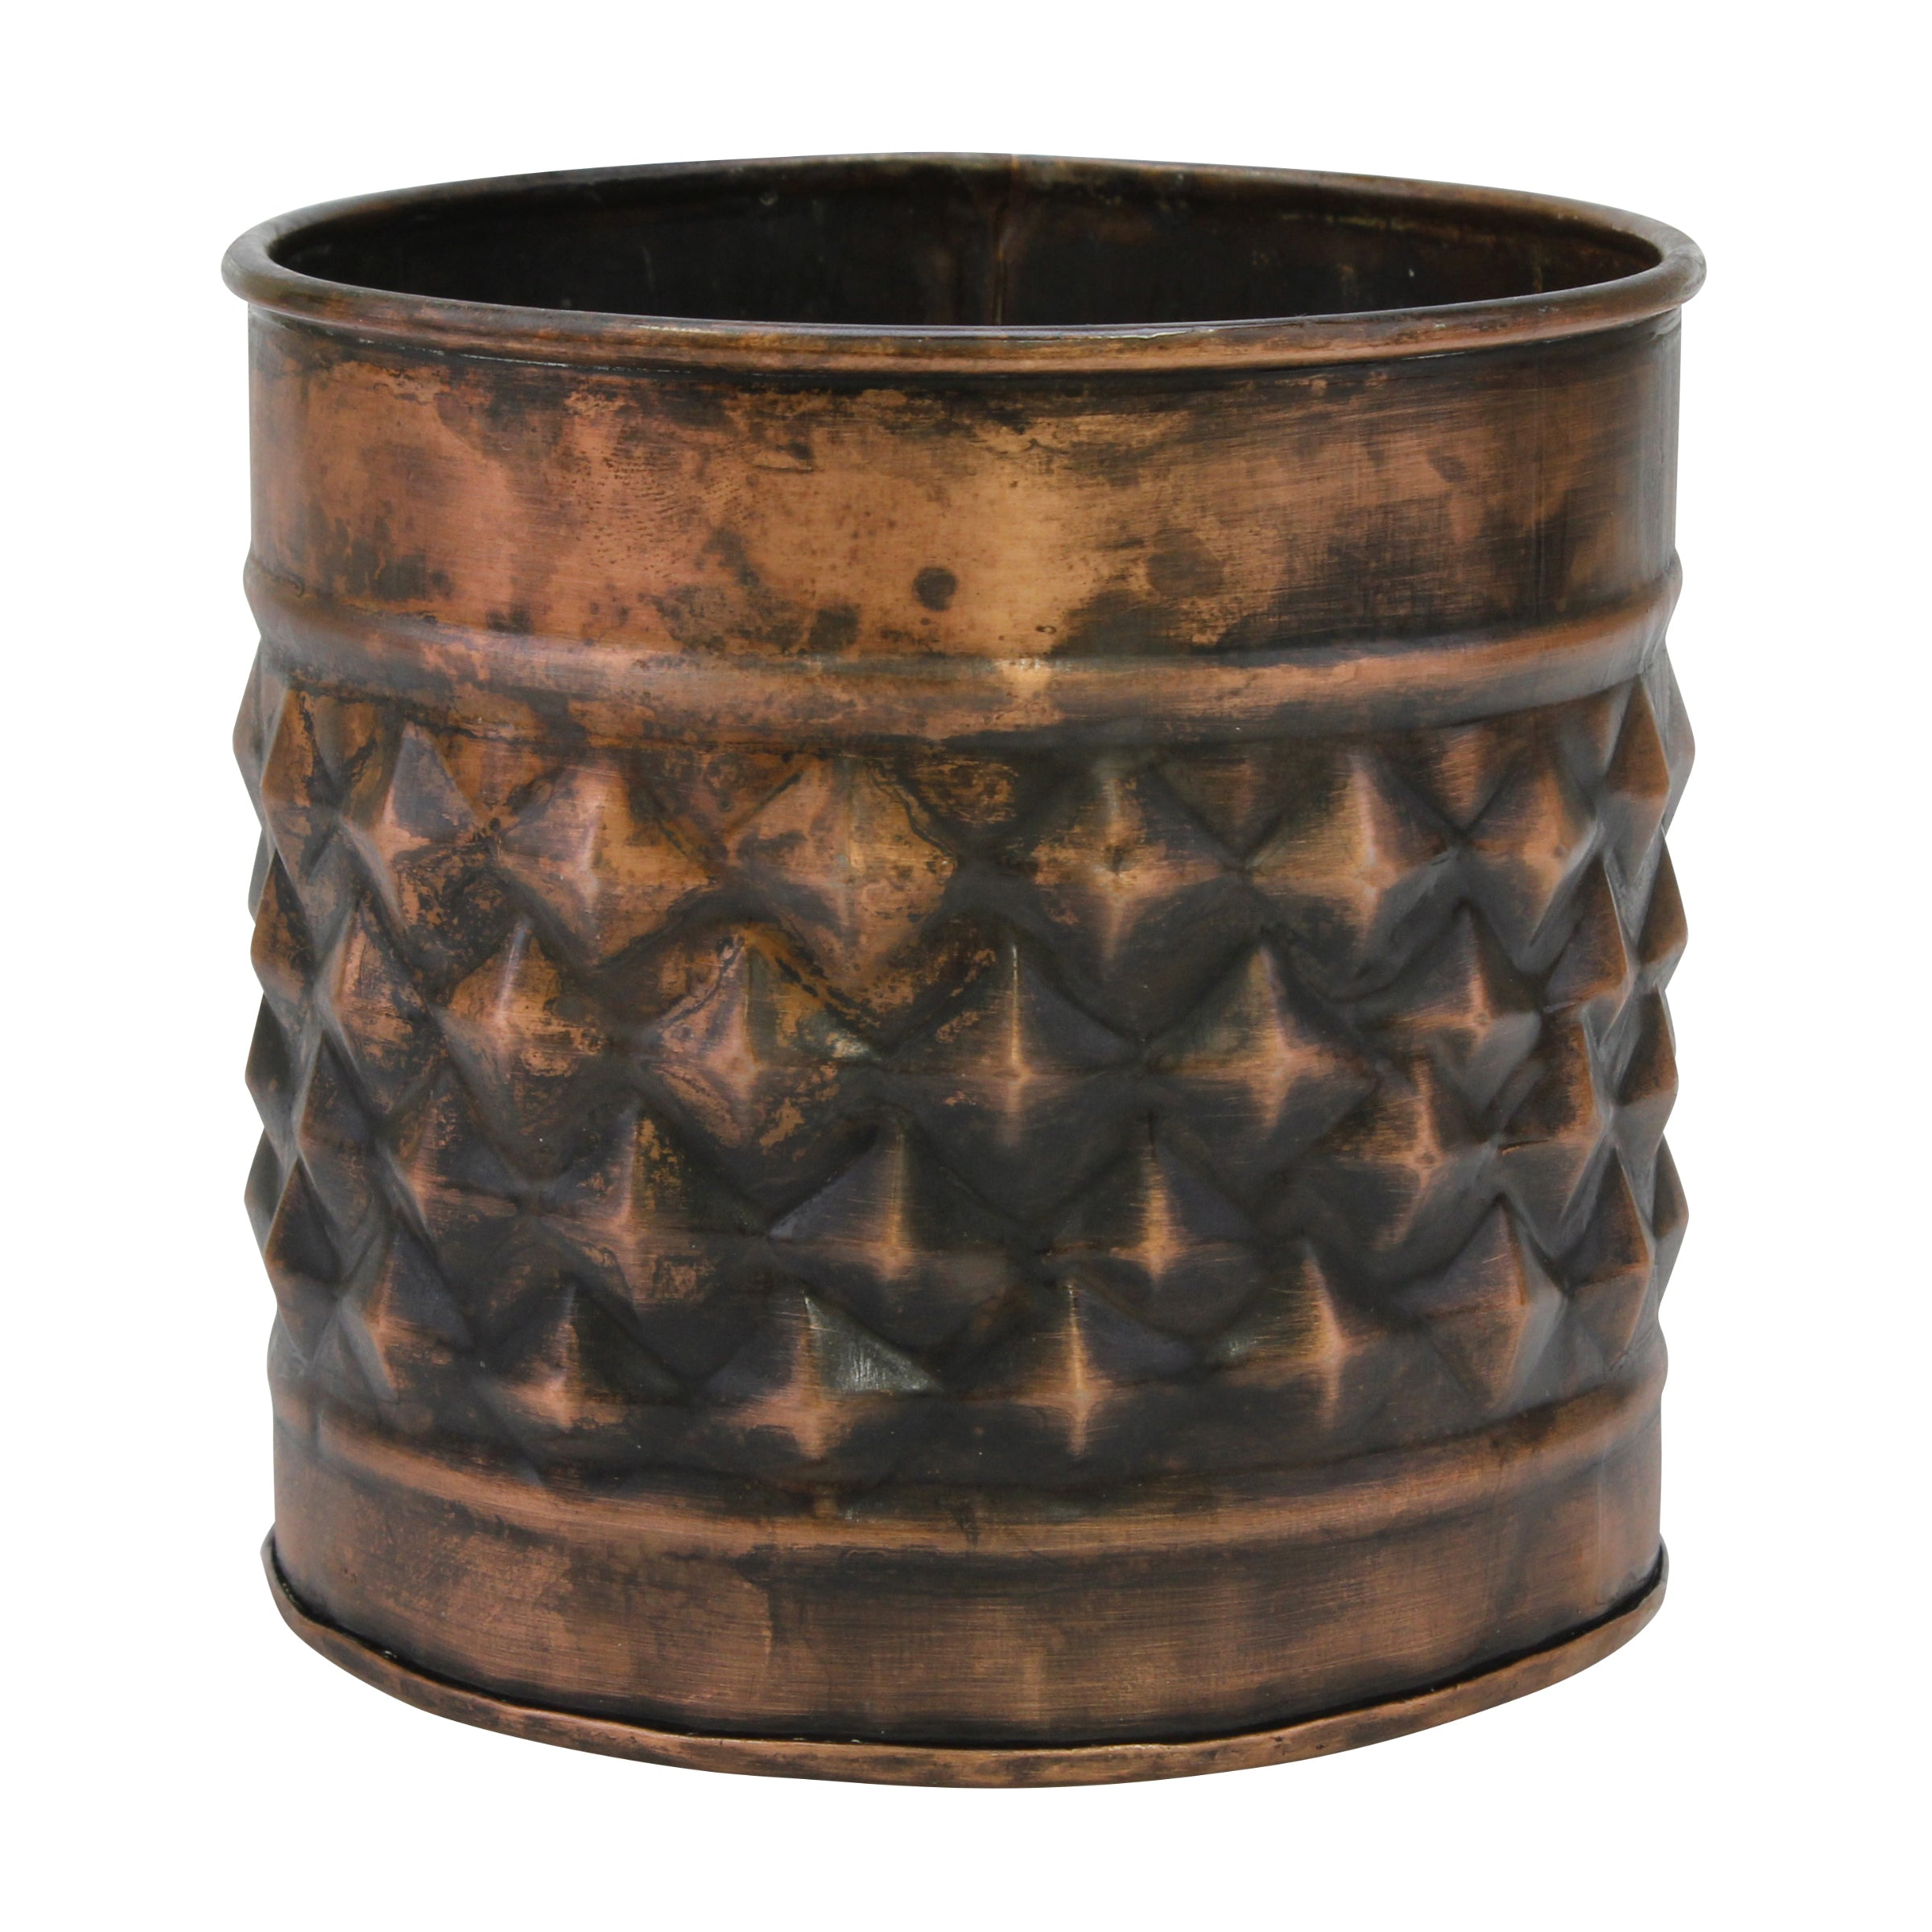 Copper Galvanized Metal Planters | Stonebriar Collection